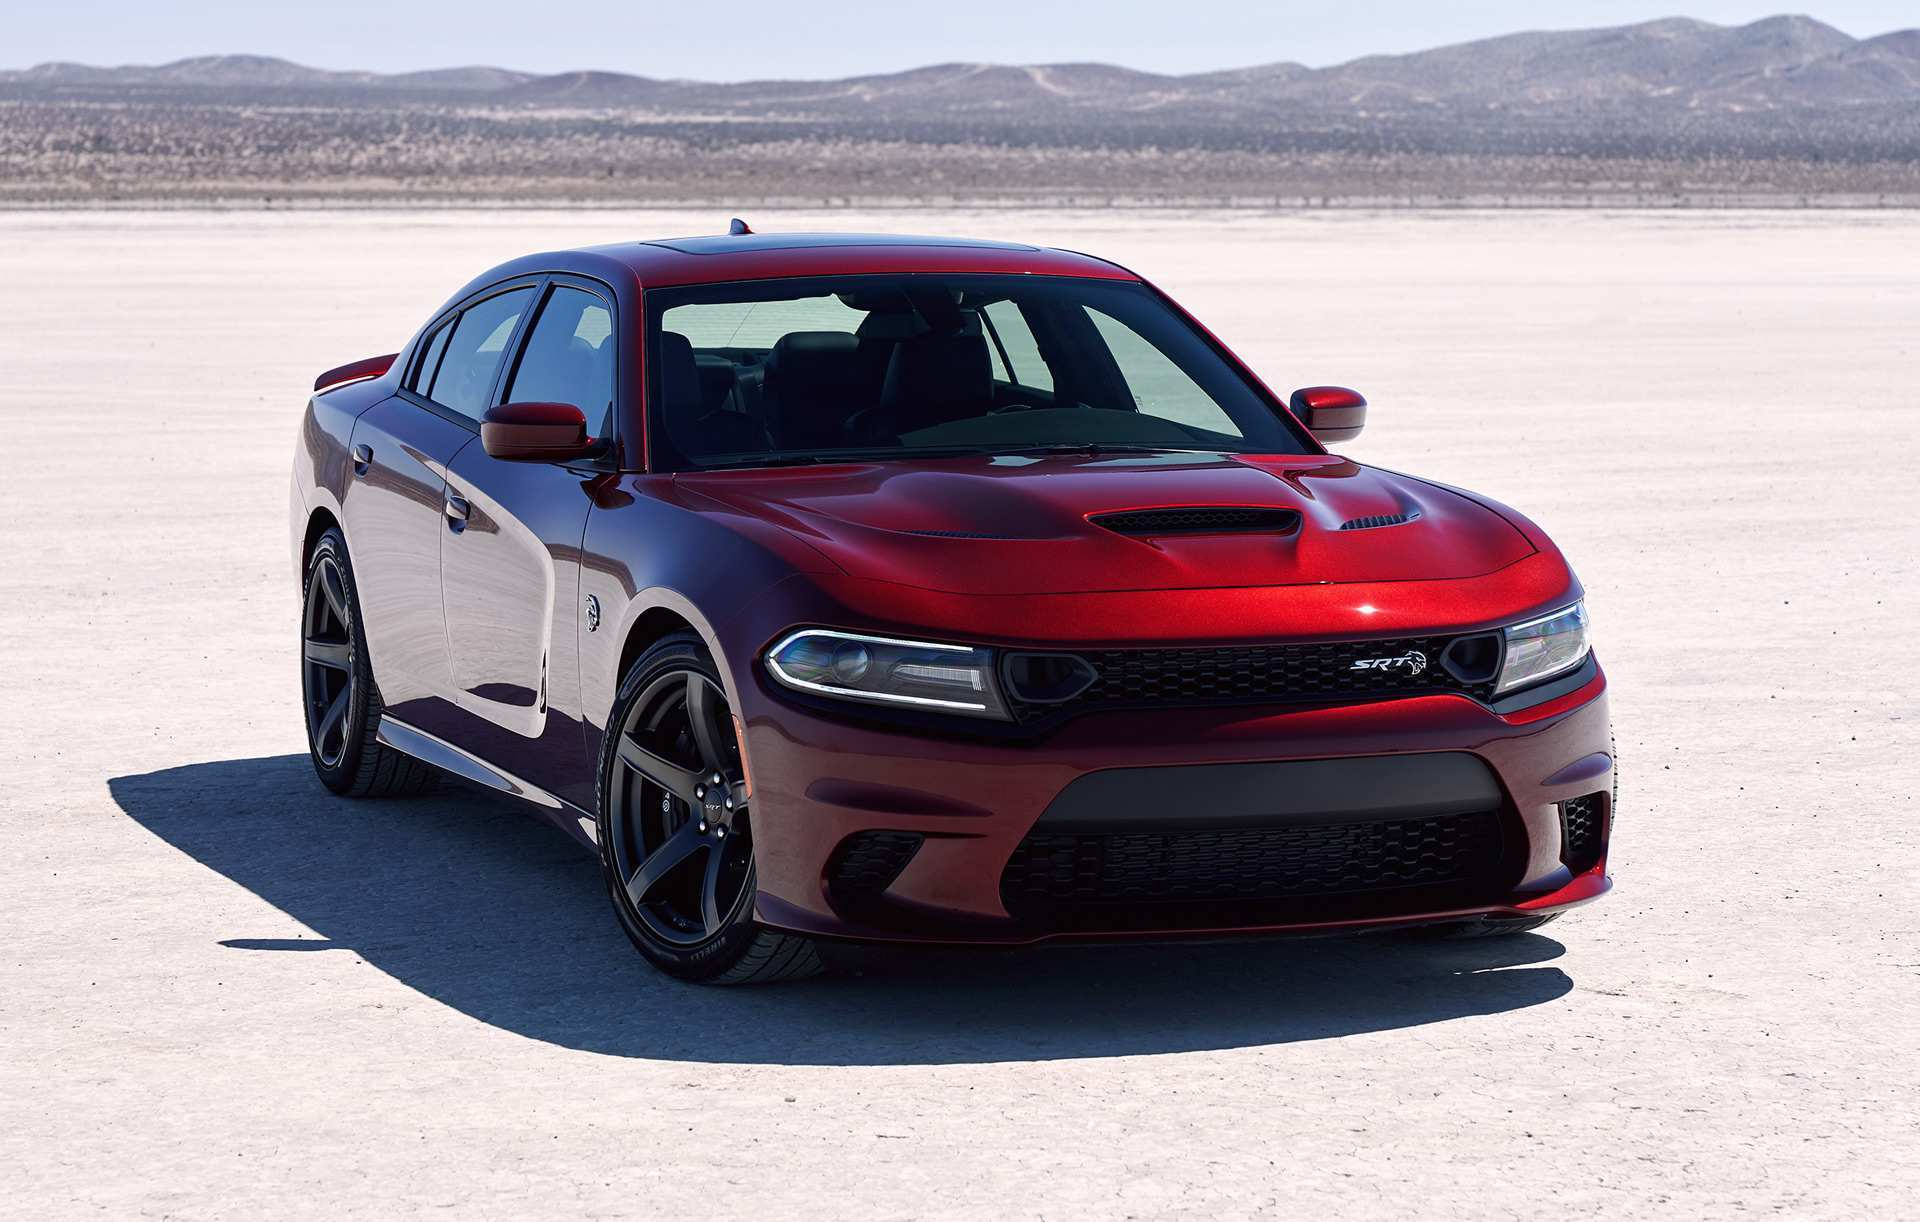 87 All New 2019 Dodge Challenger Srt Release Date